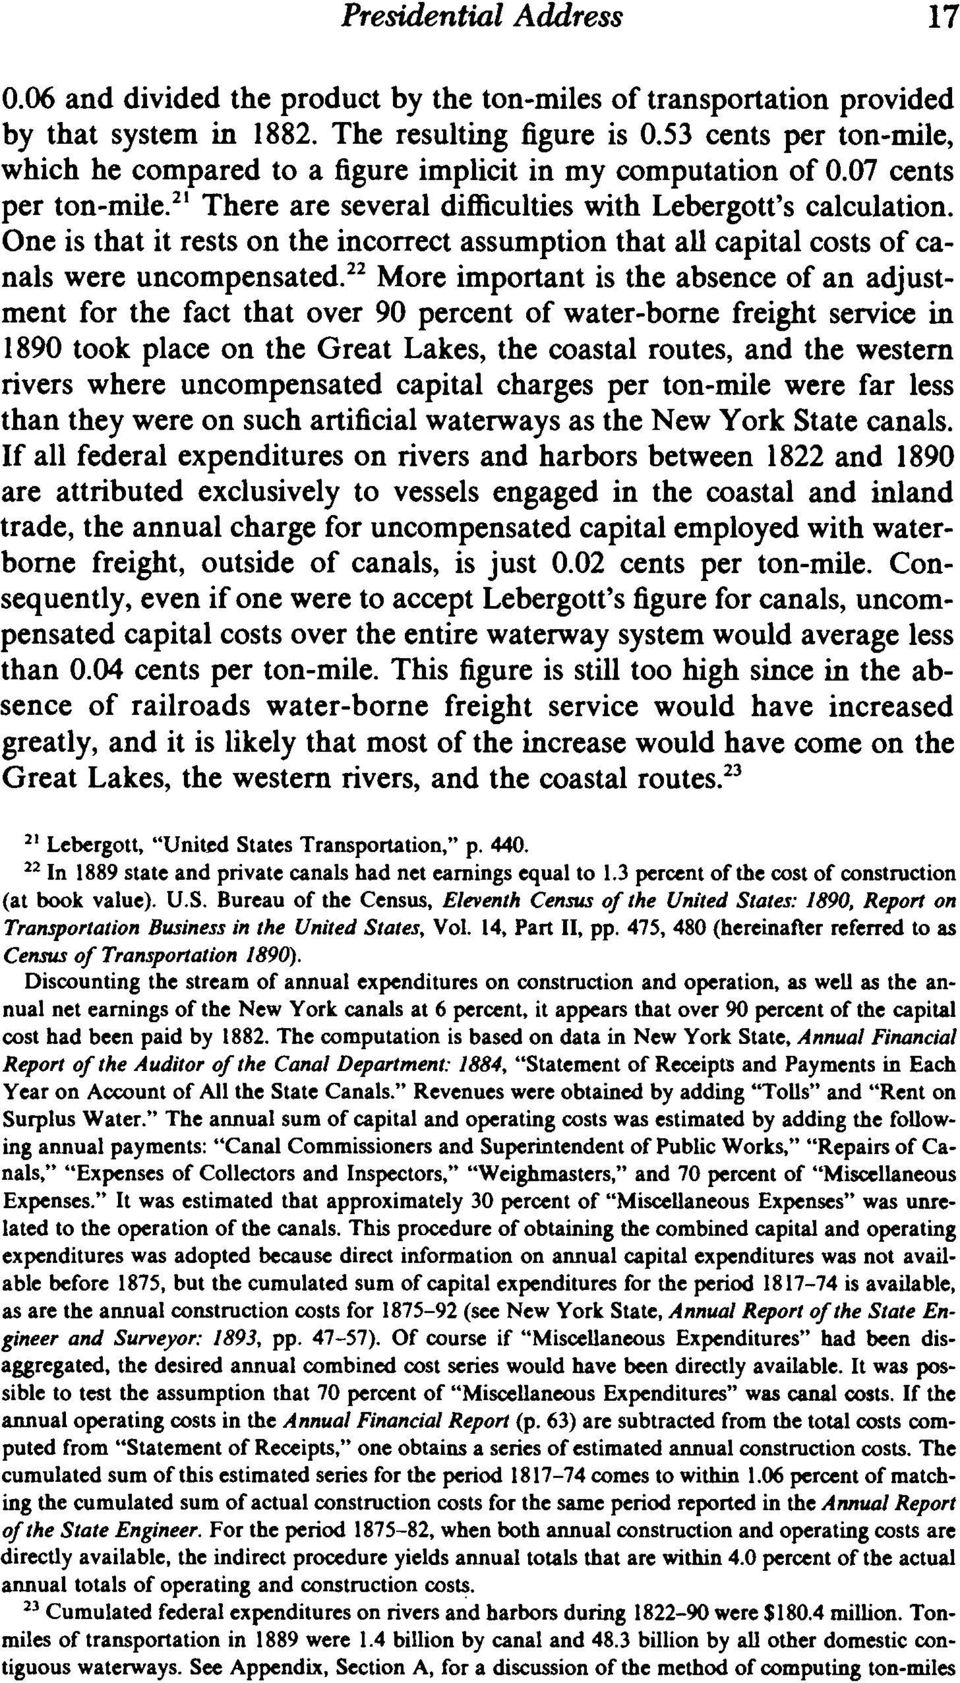 One is that it rests on the incorrect assumption that all capital costs of canals were uncompensated.